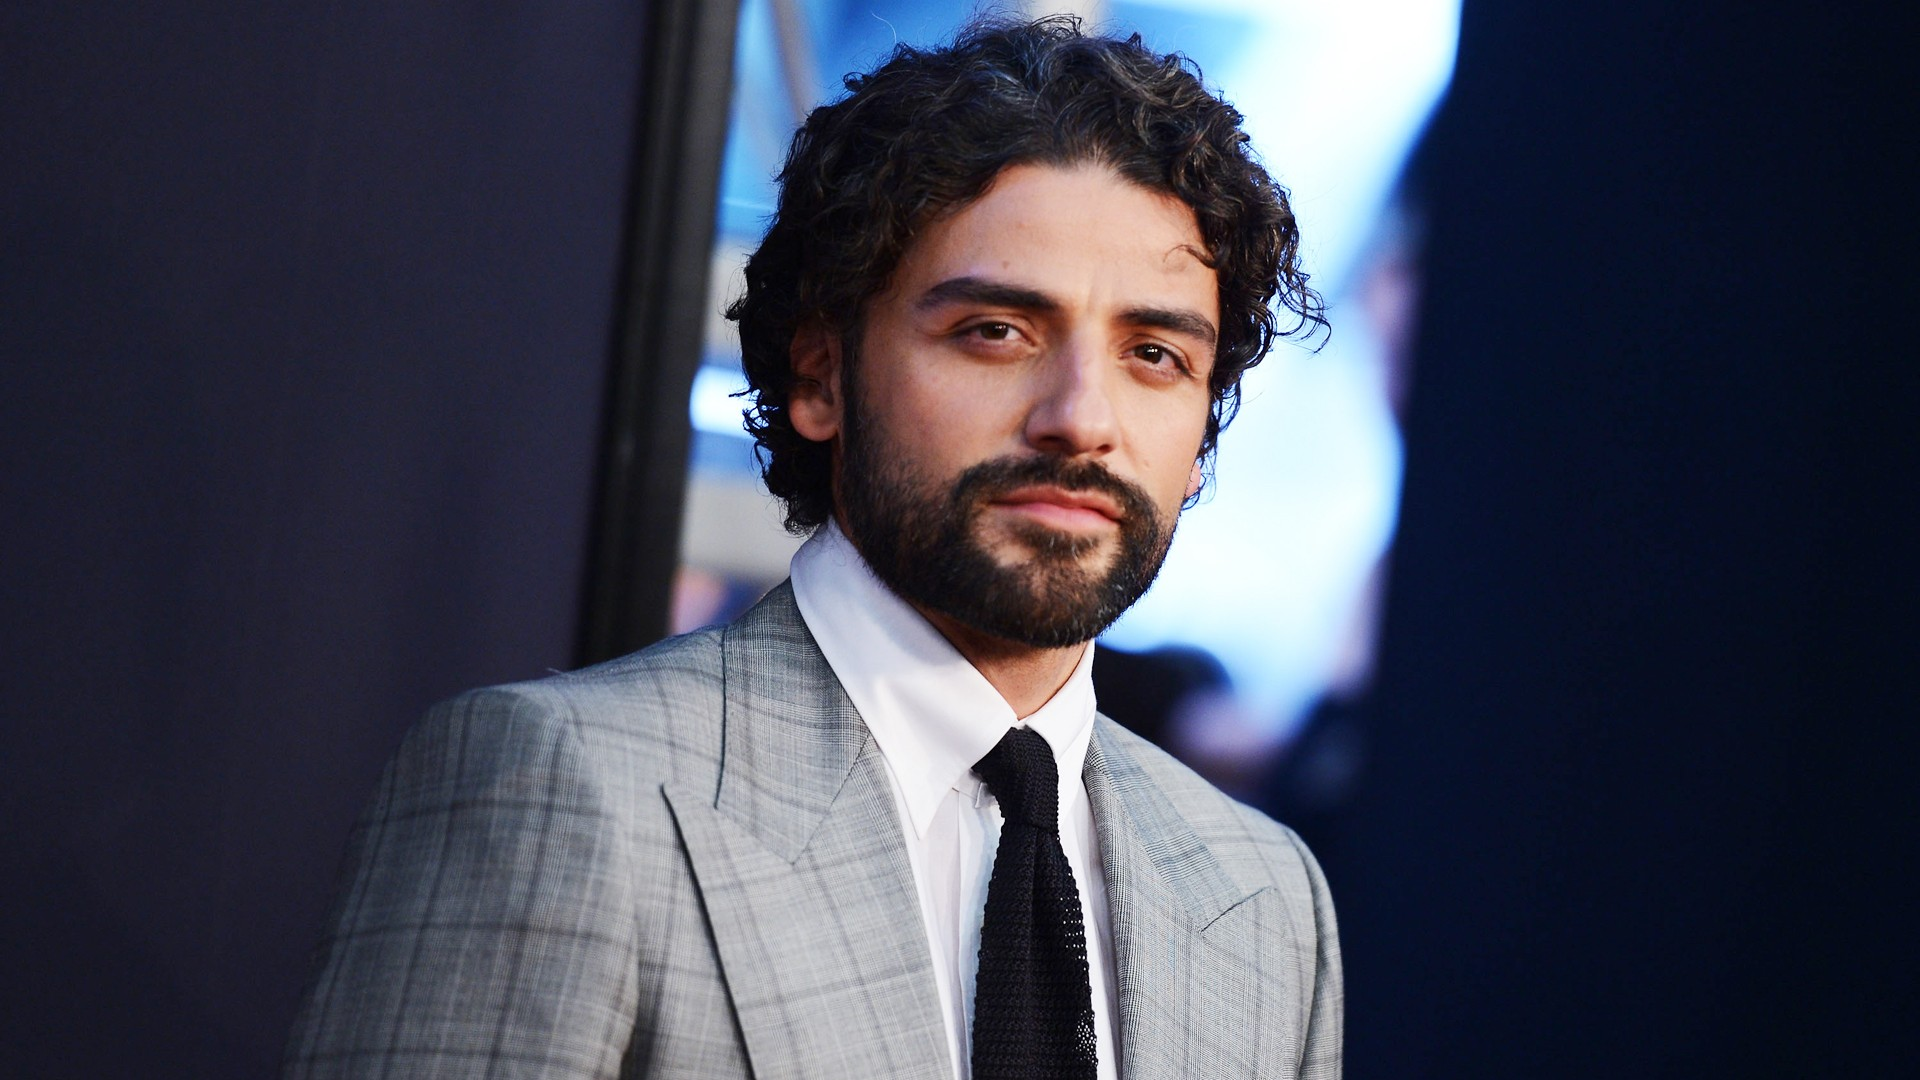 The Nativity Story 24071 W in addition Oscar Isaac   Worth as well Oscar Isaac Inside Llewyn Davis 5971 moreover Movie The Nativity Story 2007 also Actor Guatemalteco Protagonizara Nueva Pelicula De Los Hermanos Coen. on oscar isaac nativity